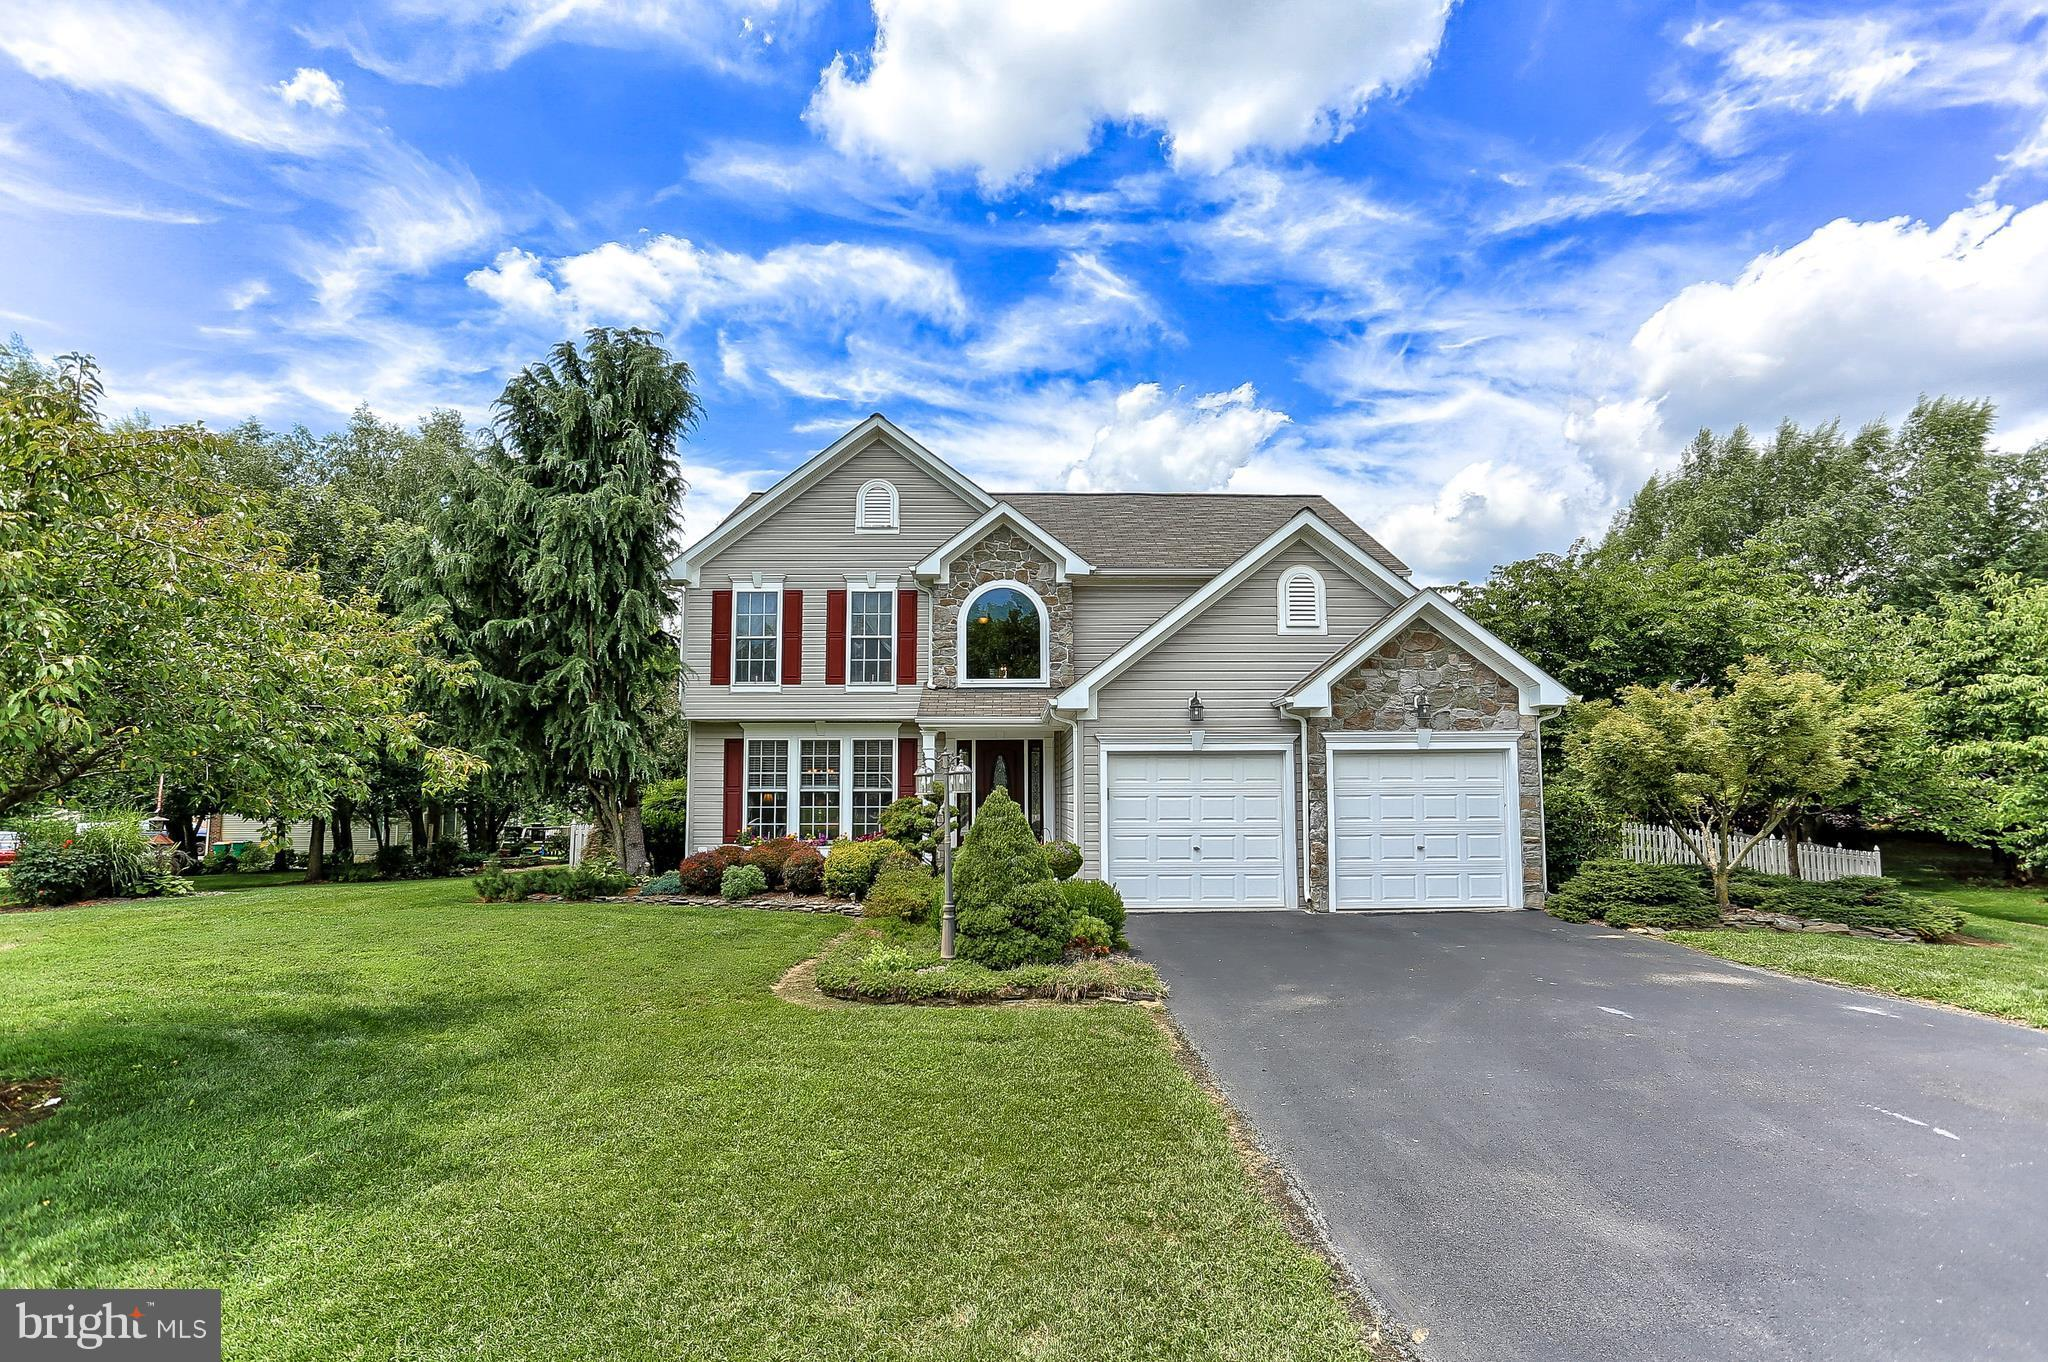 Beautiful tri-level home on cul-de-sac in Woodbridge development; ceramic, granite, marble, hardwood floors & counters; stainless appliances; sunken family rm w/gas fireplace; sunken livg rm; finished lower level w/walk out stairs; beautifully landscaped; covered deck off breakfast rm; gazebo, cabana house for storage. Offered with adjacent corner lot or separately(WA10210961) Move in condition!!